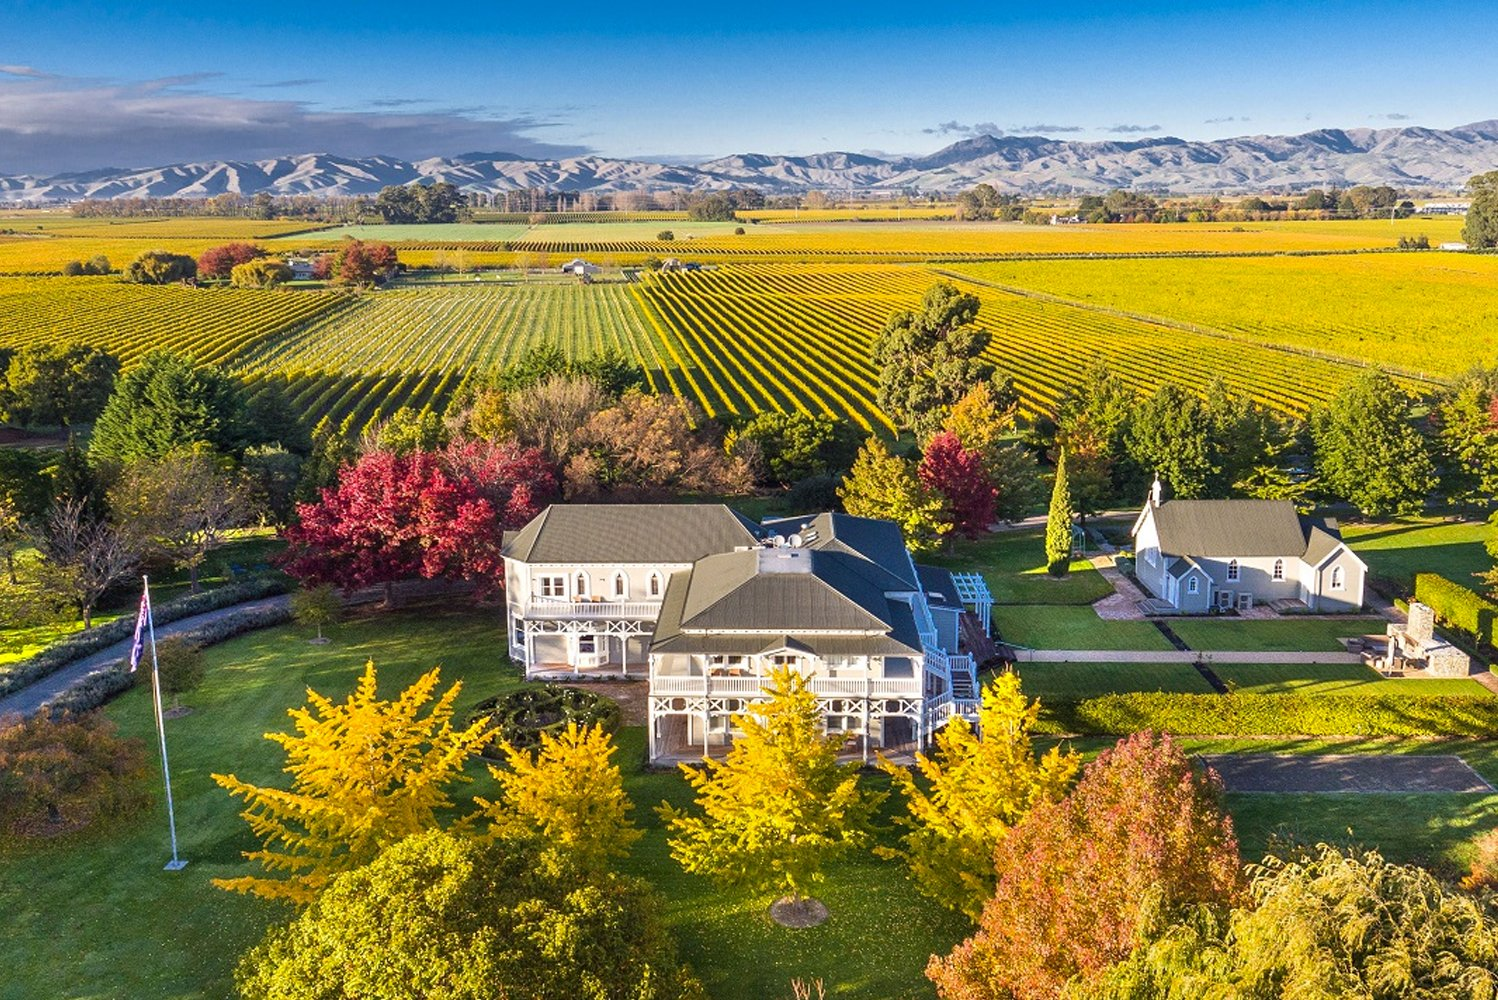 The property is located in the wine country's Marlborough region.